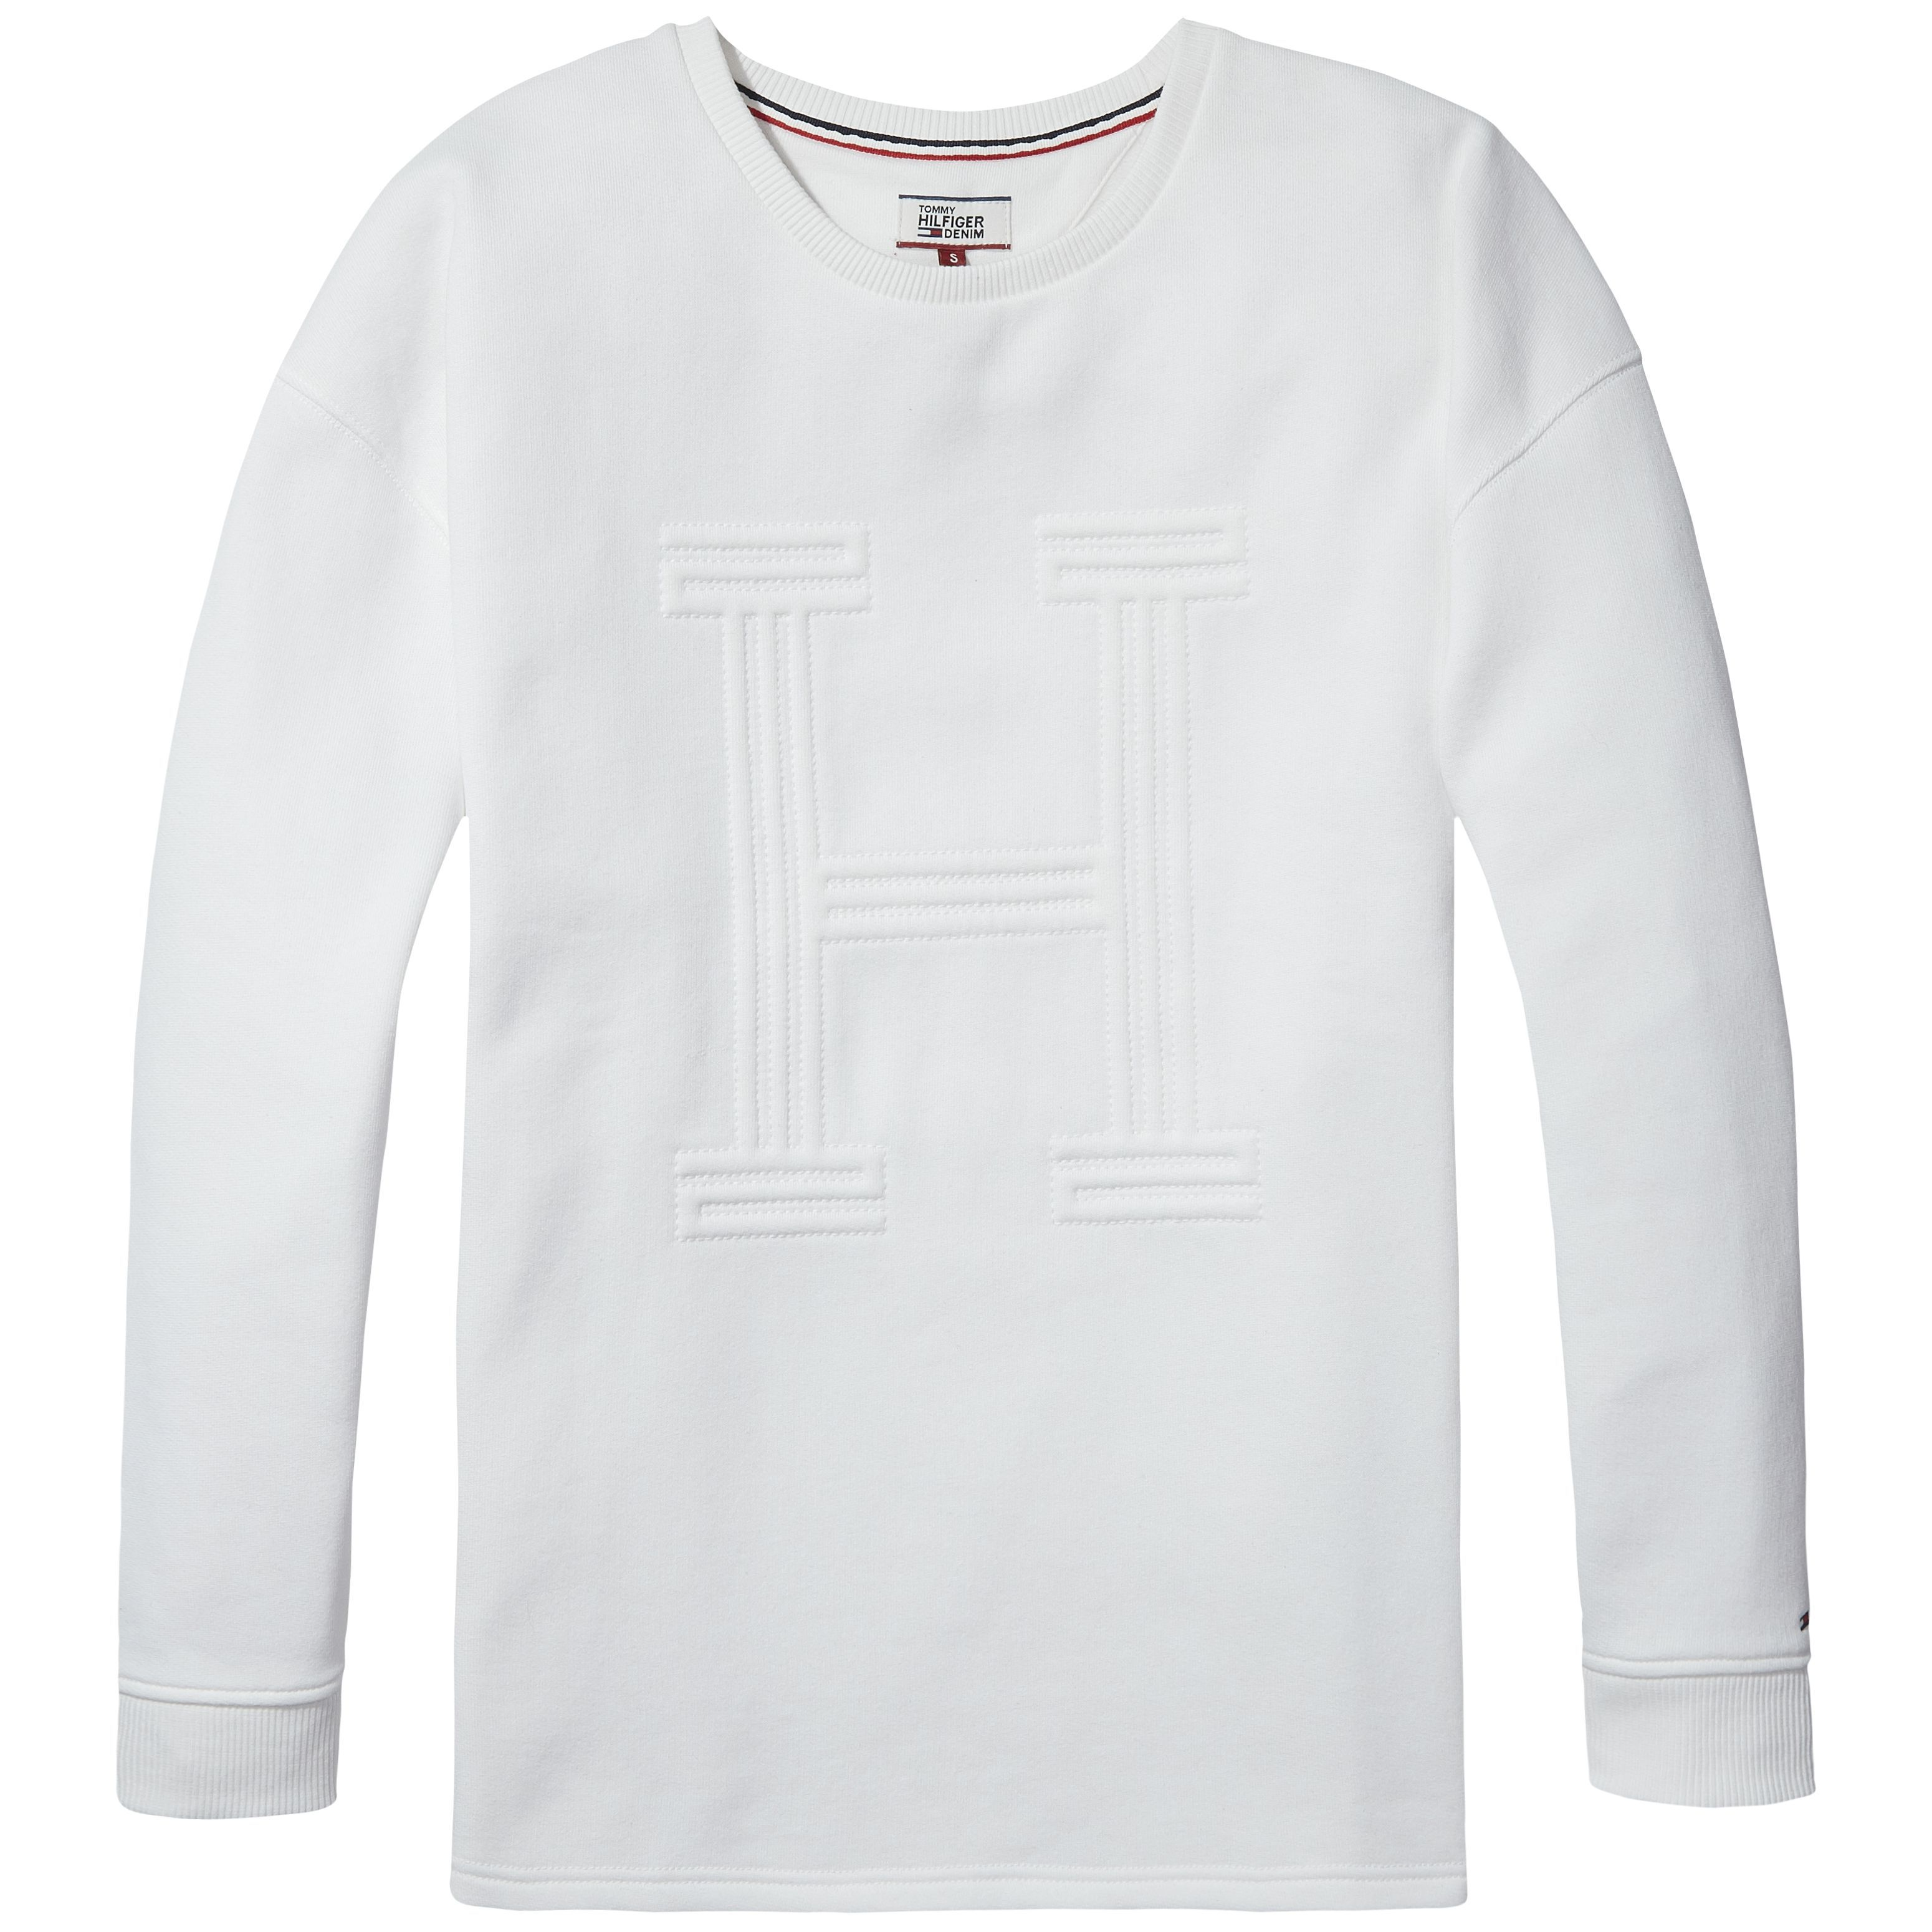 Tommy Hilfiger Graphic H Sweater, White